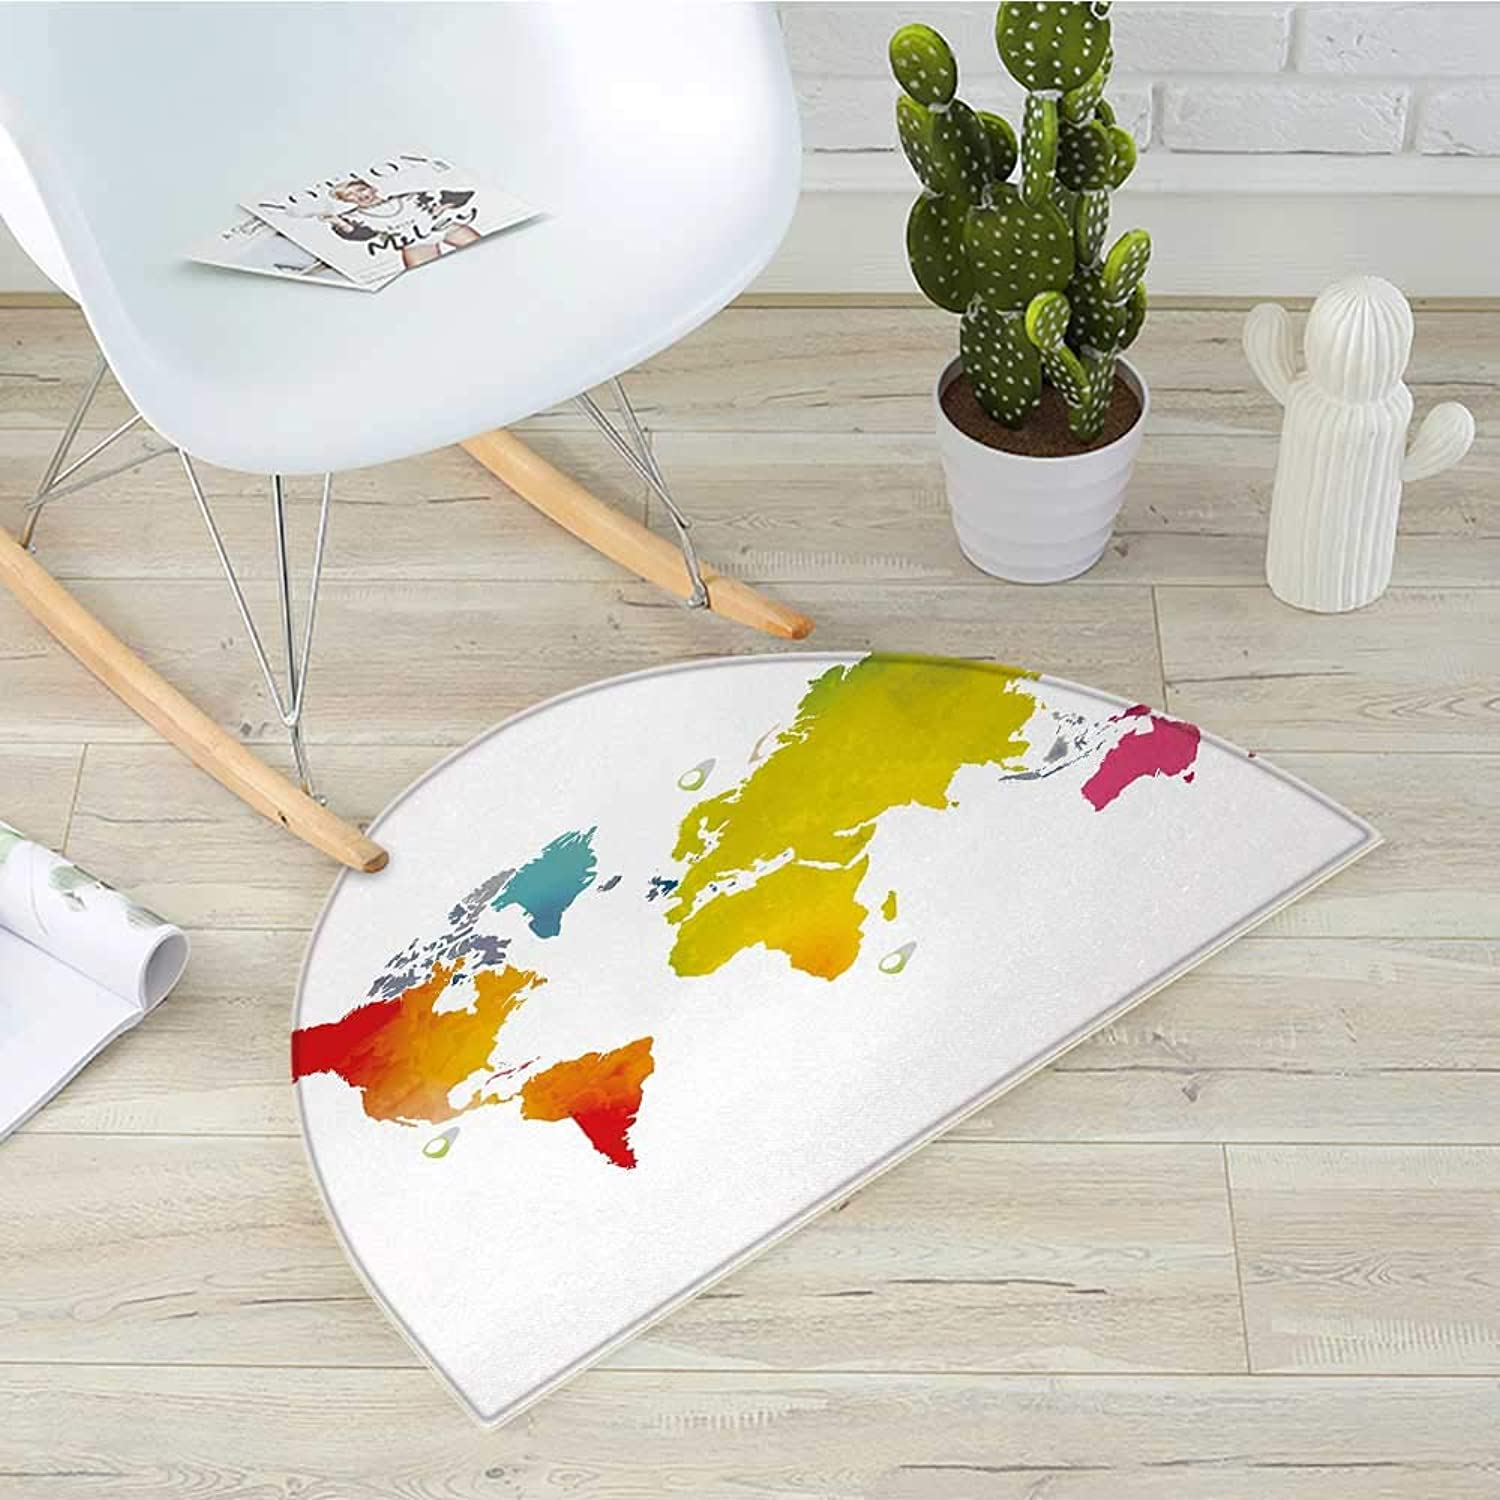 Map Semicircular CushionContinents of World in Vibrant Watercolors Artistic Graphic Design International Theme Entry Door Mat H 39.3  xD 59  Multicolor